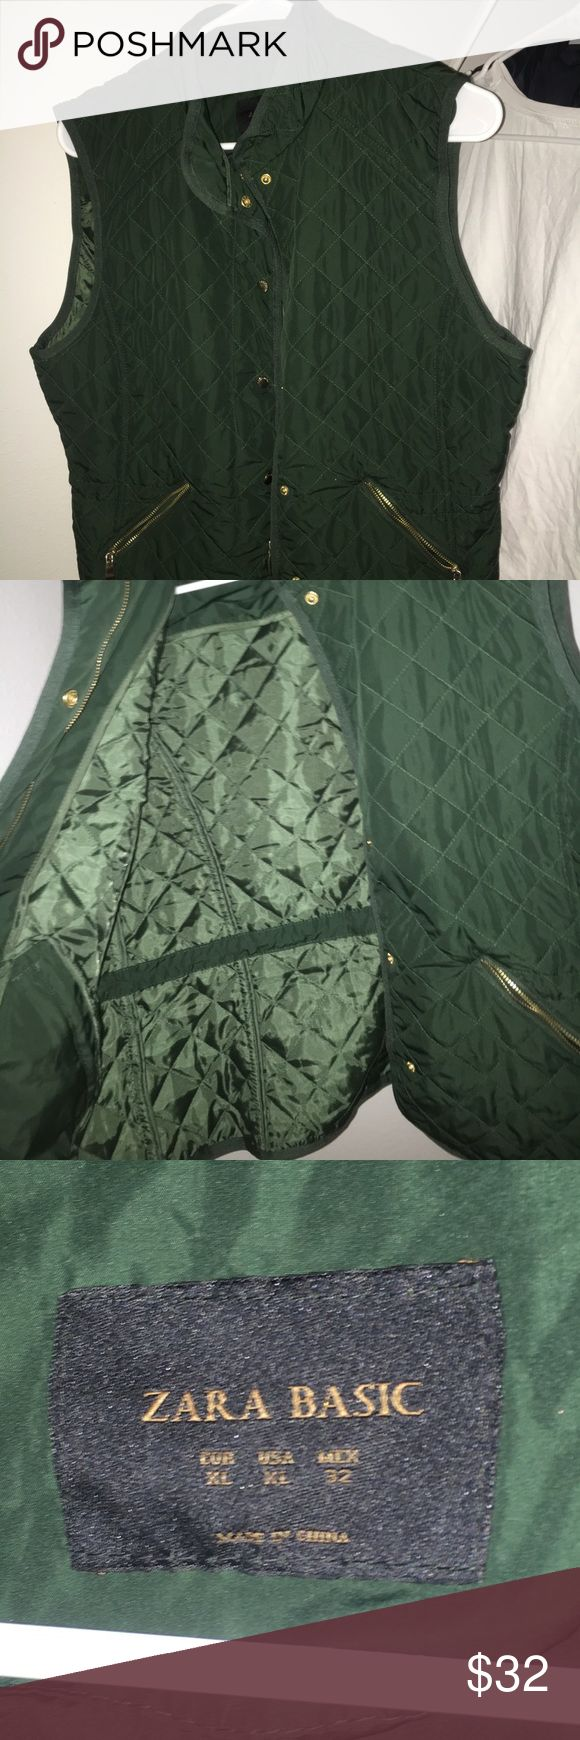 Zara army green vest Army green vests with front pockets and gold zippers Zara Jackets & Coats Vests